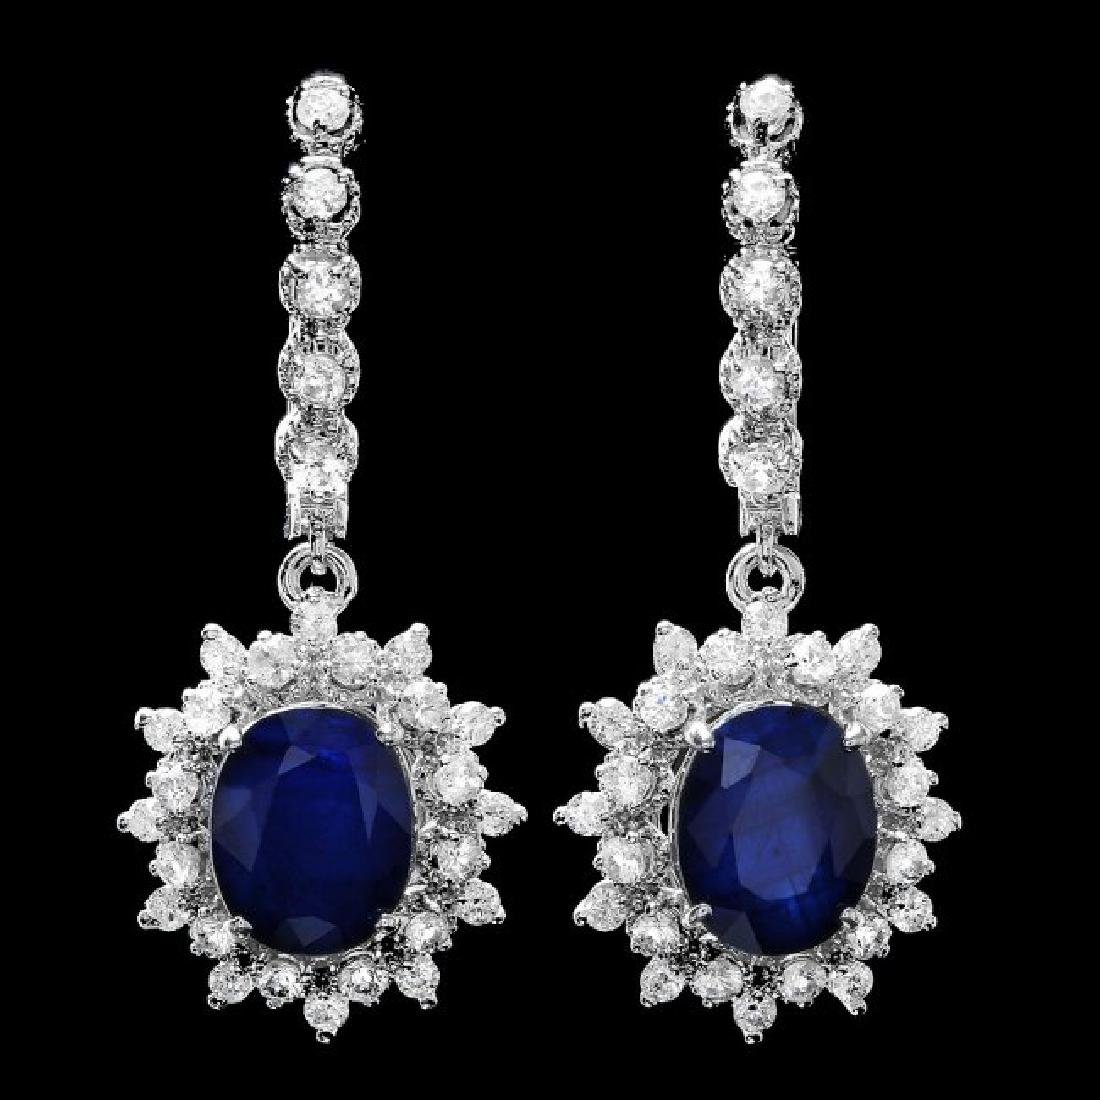 14k Gold 7.00ct Sapphire 1.80ct Diamond Earrings